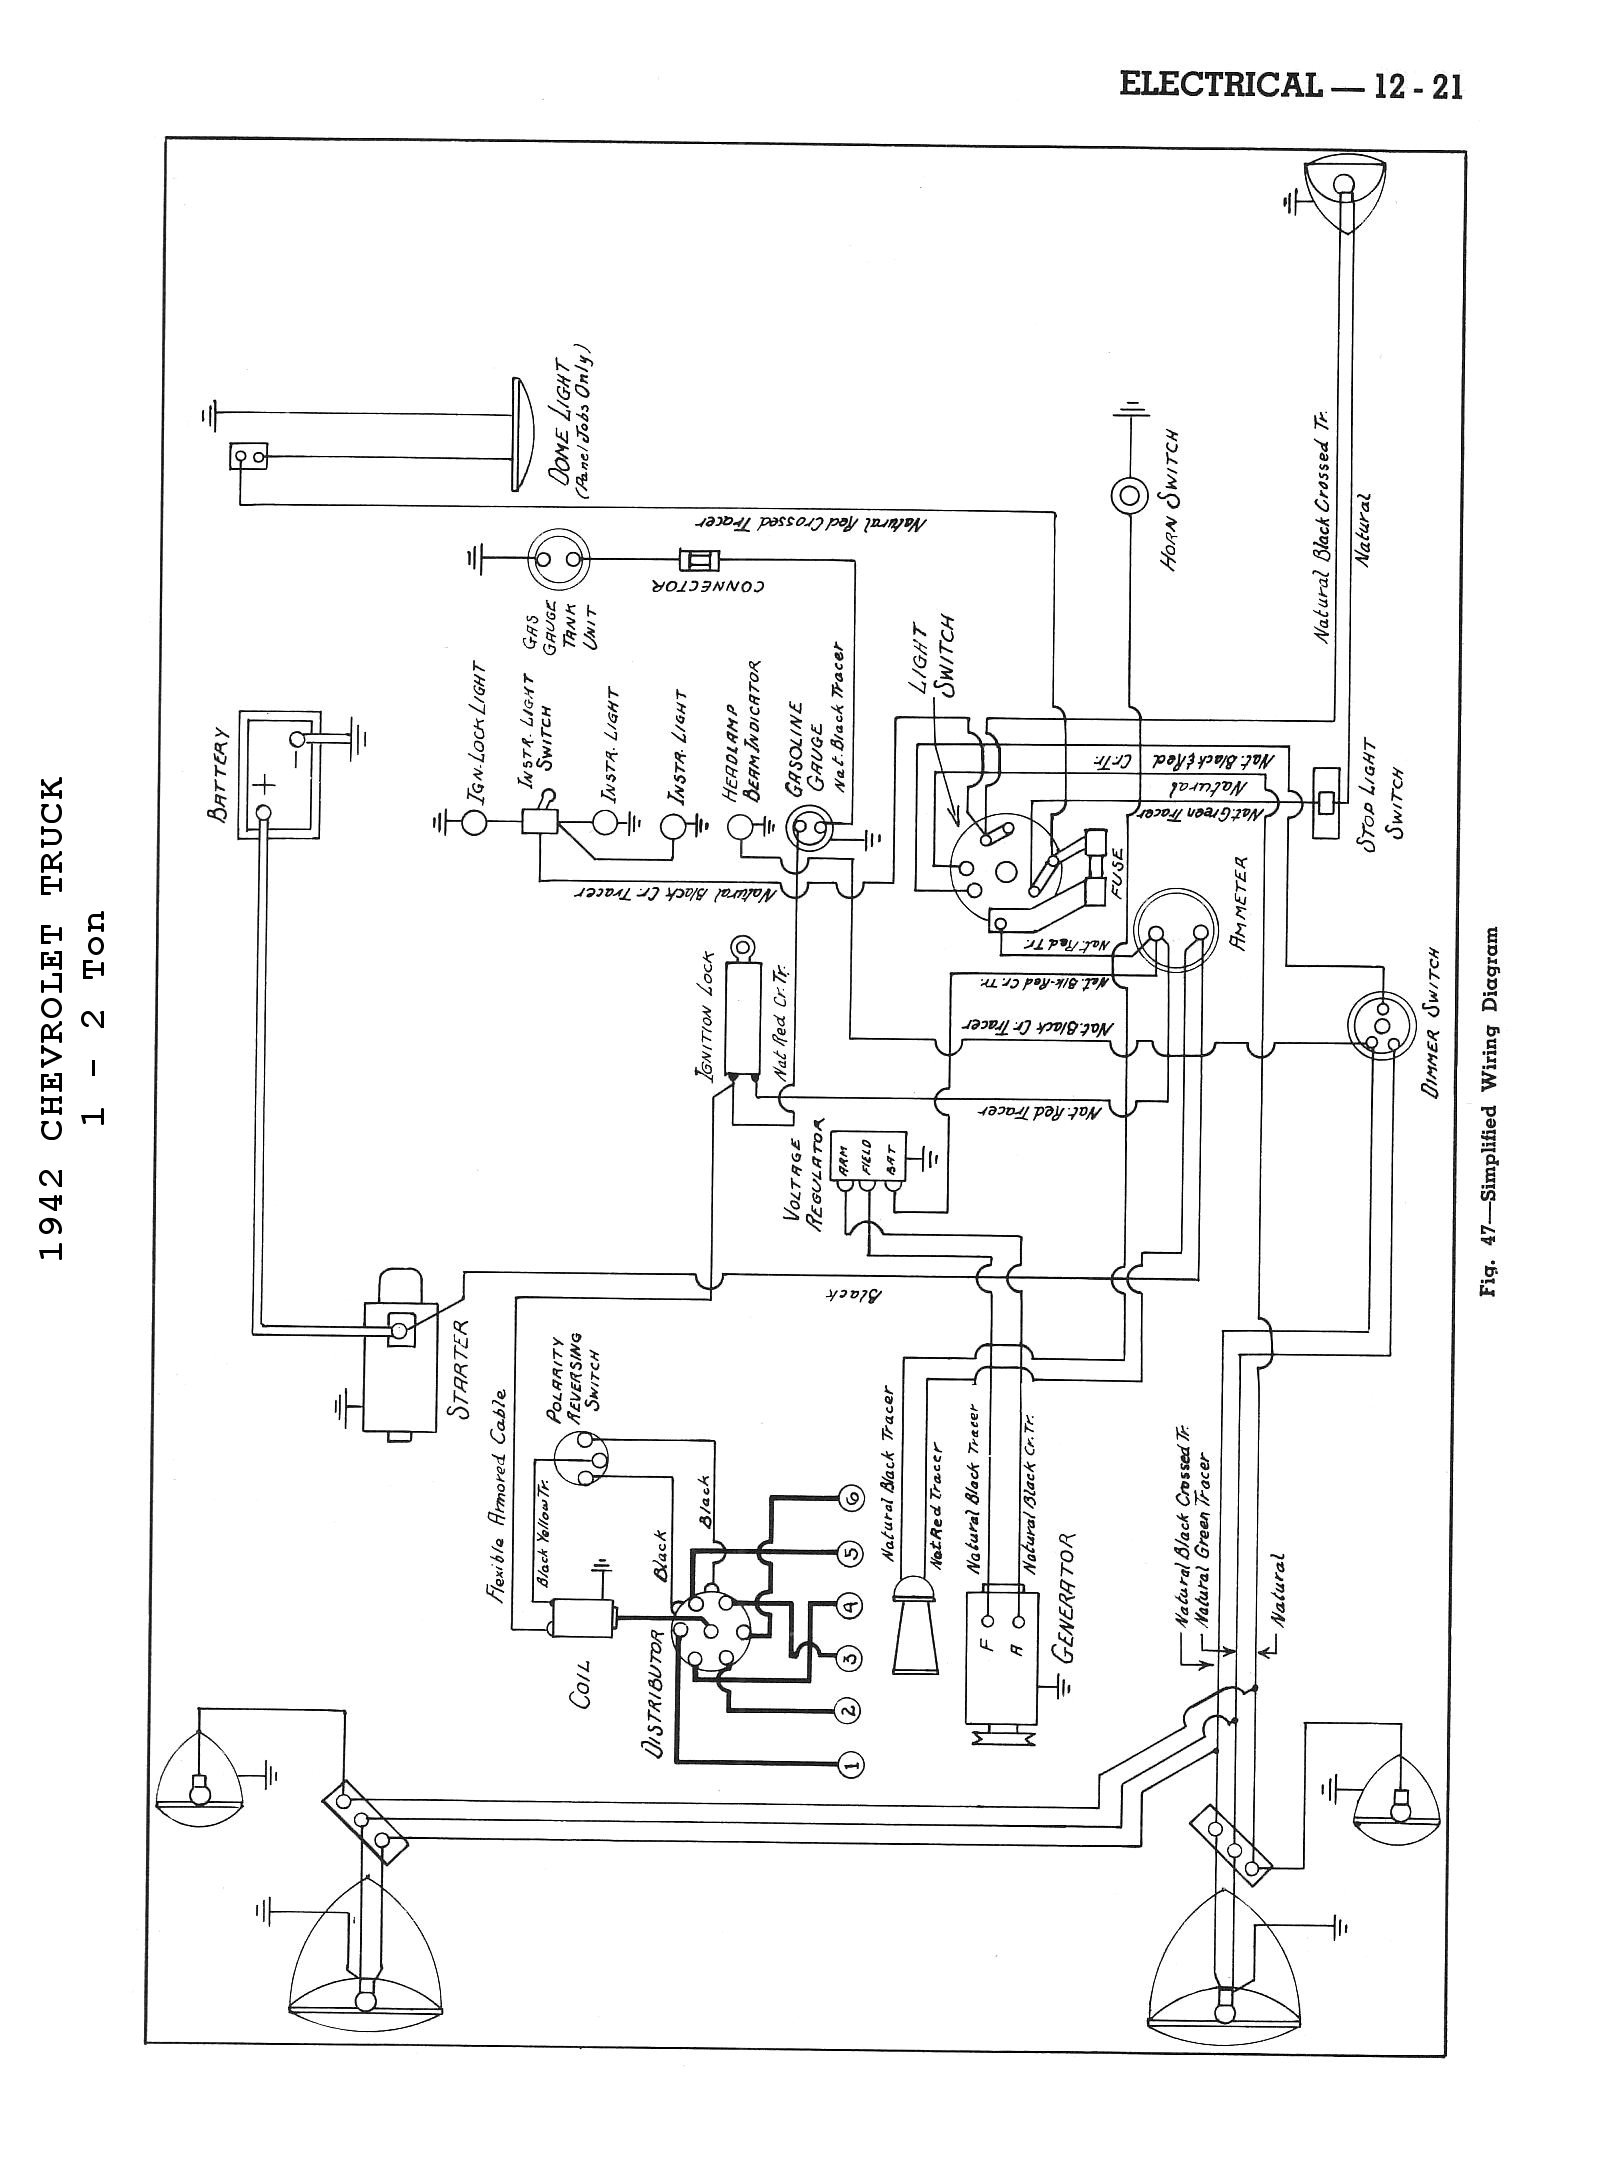 1968 Chevy C10 Under Hood Wiring Diagram Electrical Truck Enthusiast Diagrams U2022 Rh Rasalibre Co 1979 Impala